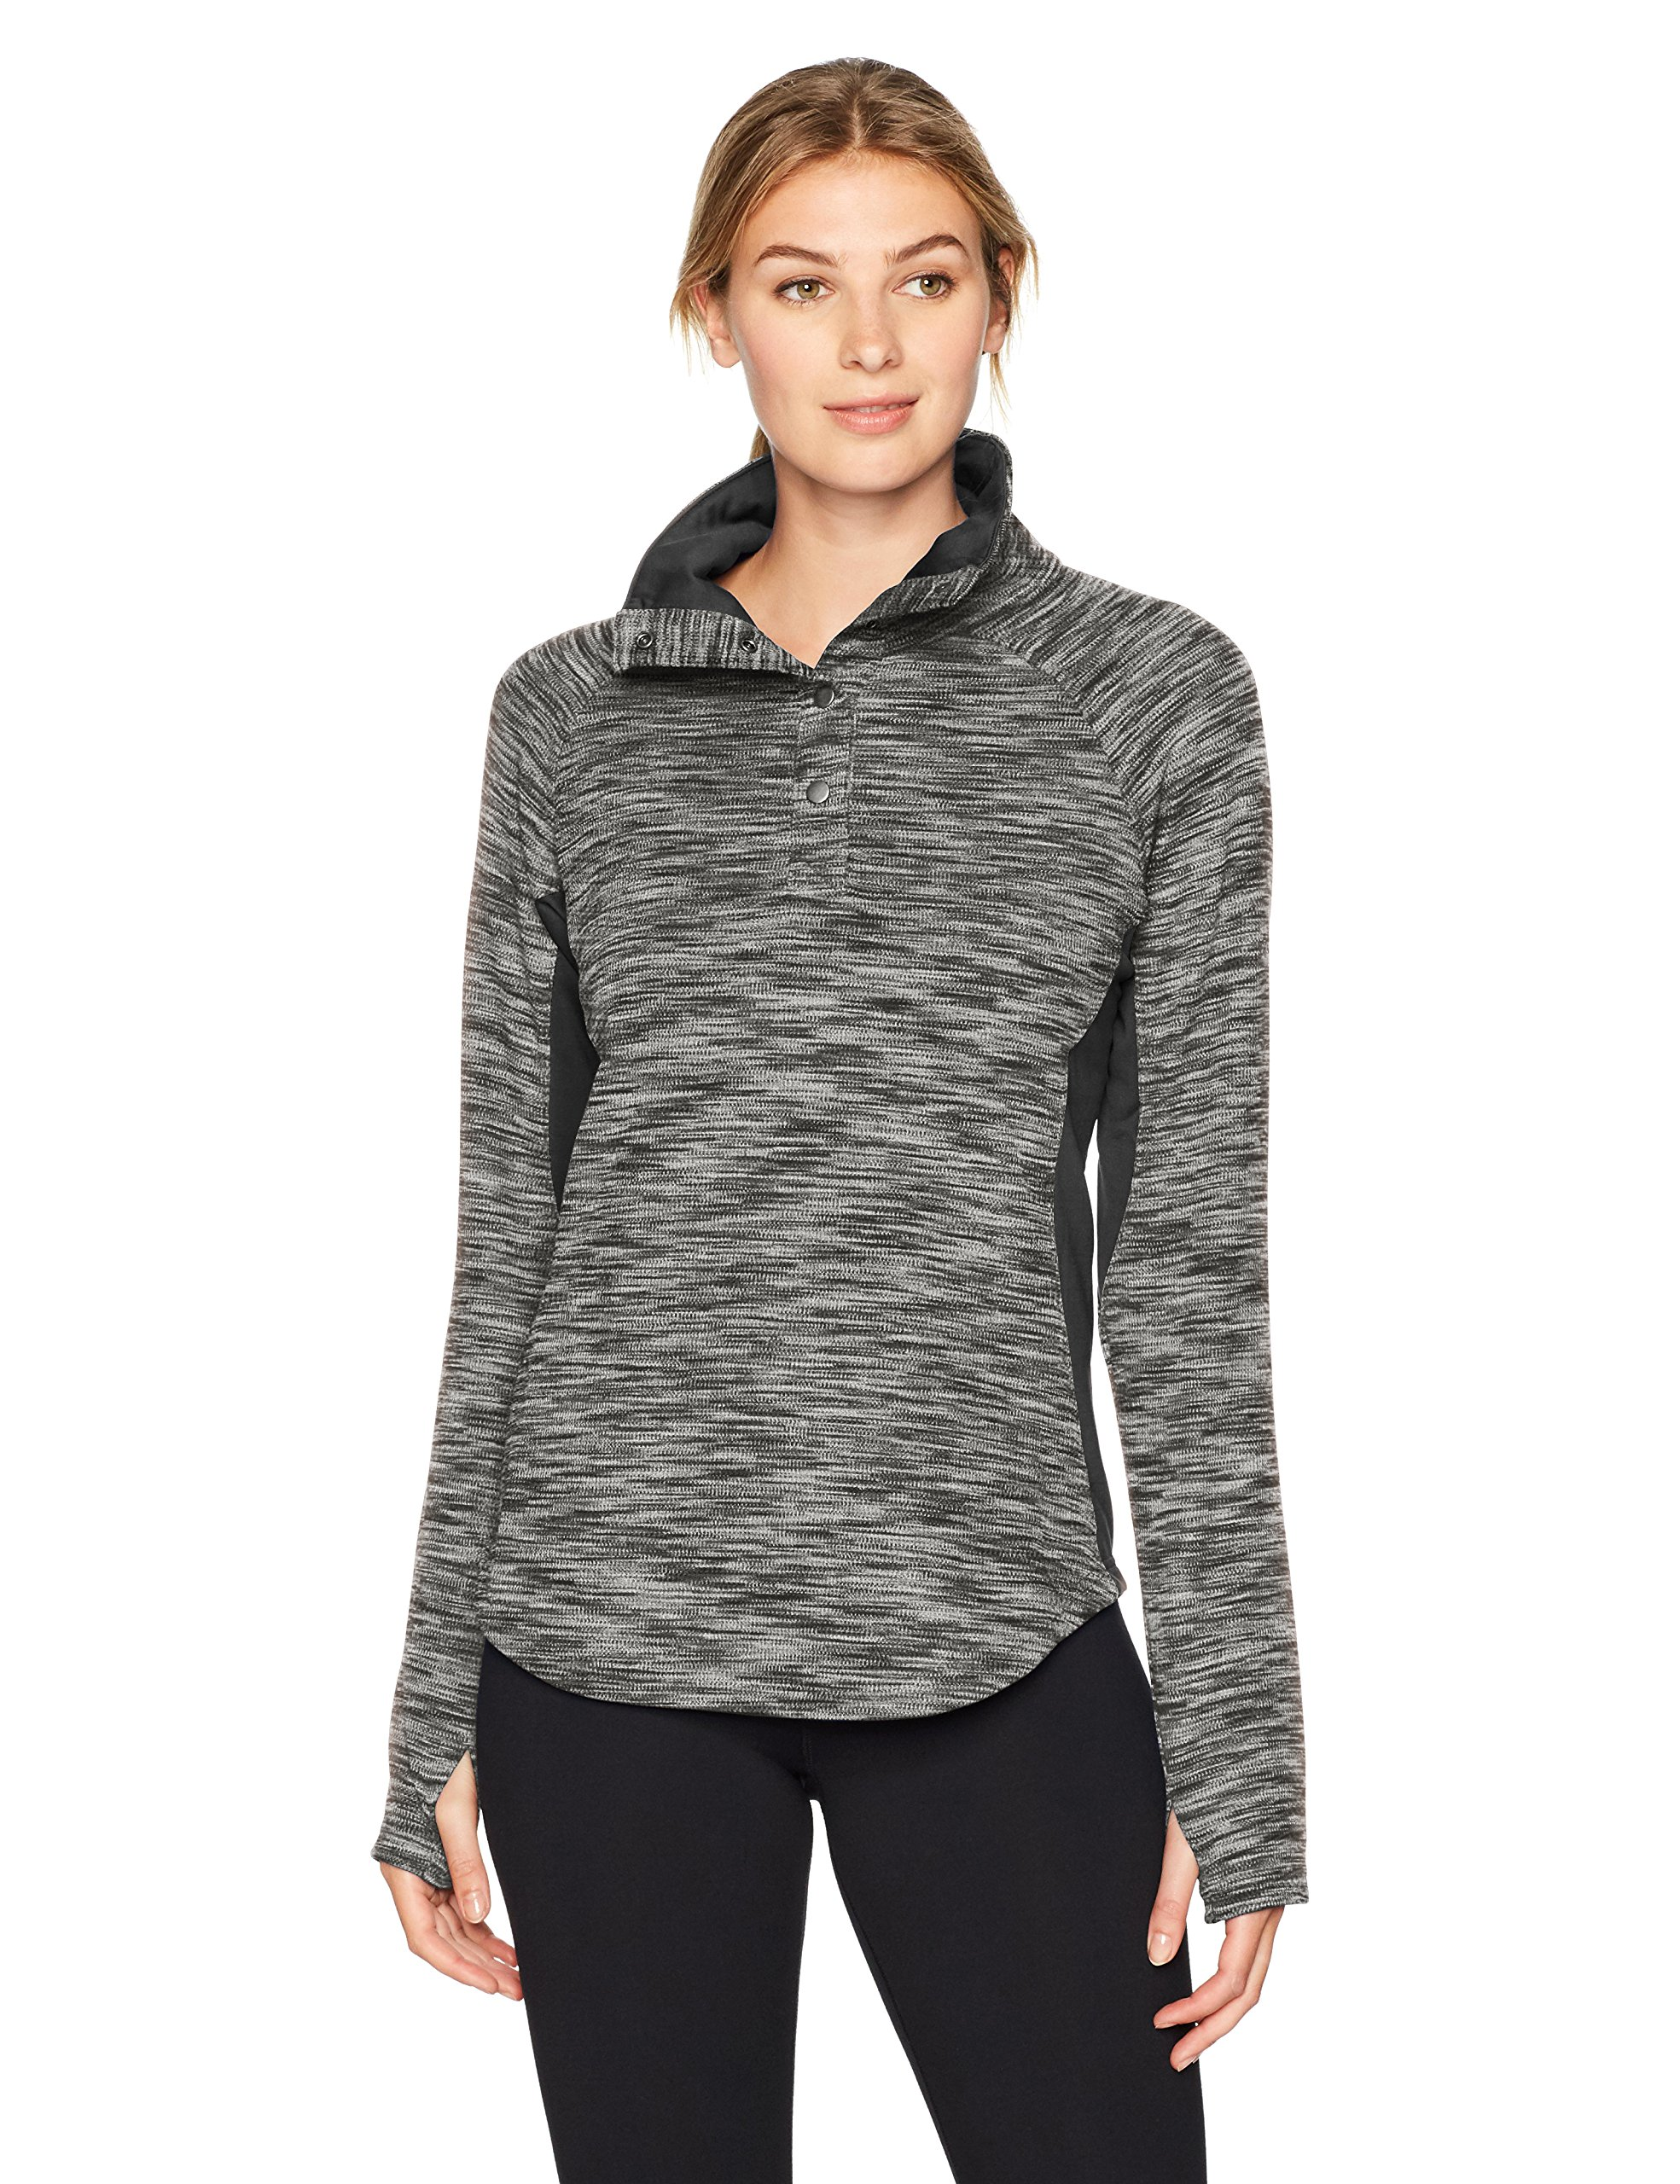 Columbia Women's Optic Got It ii Pull Over, Black, Small by Columbia